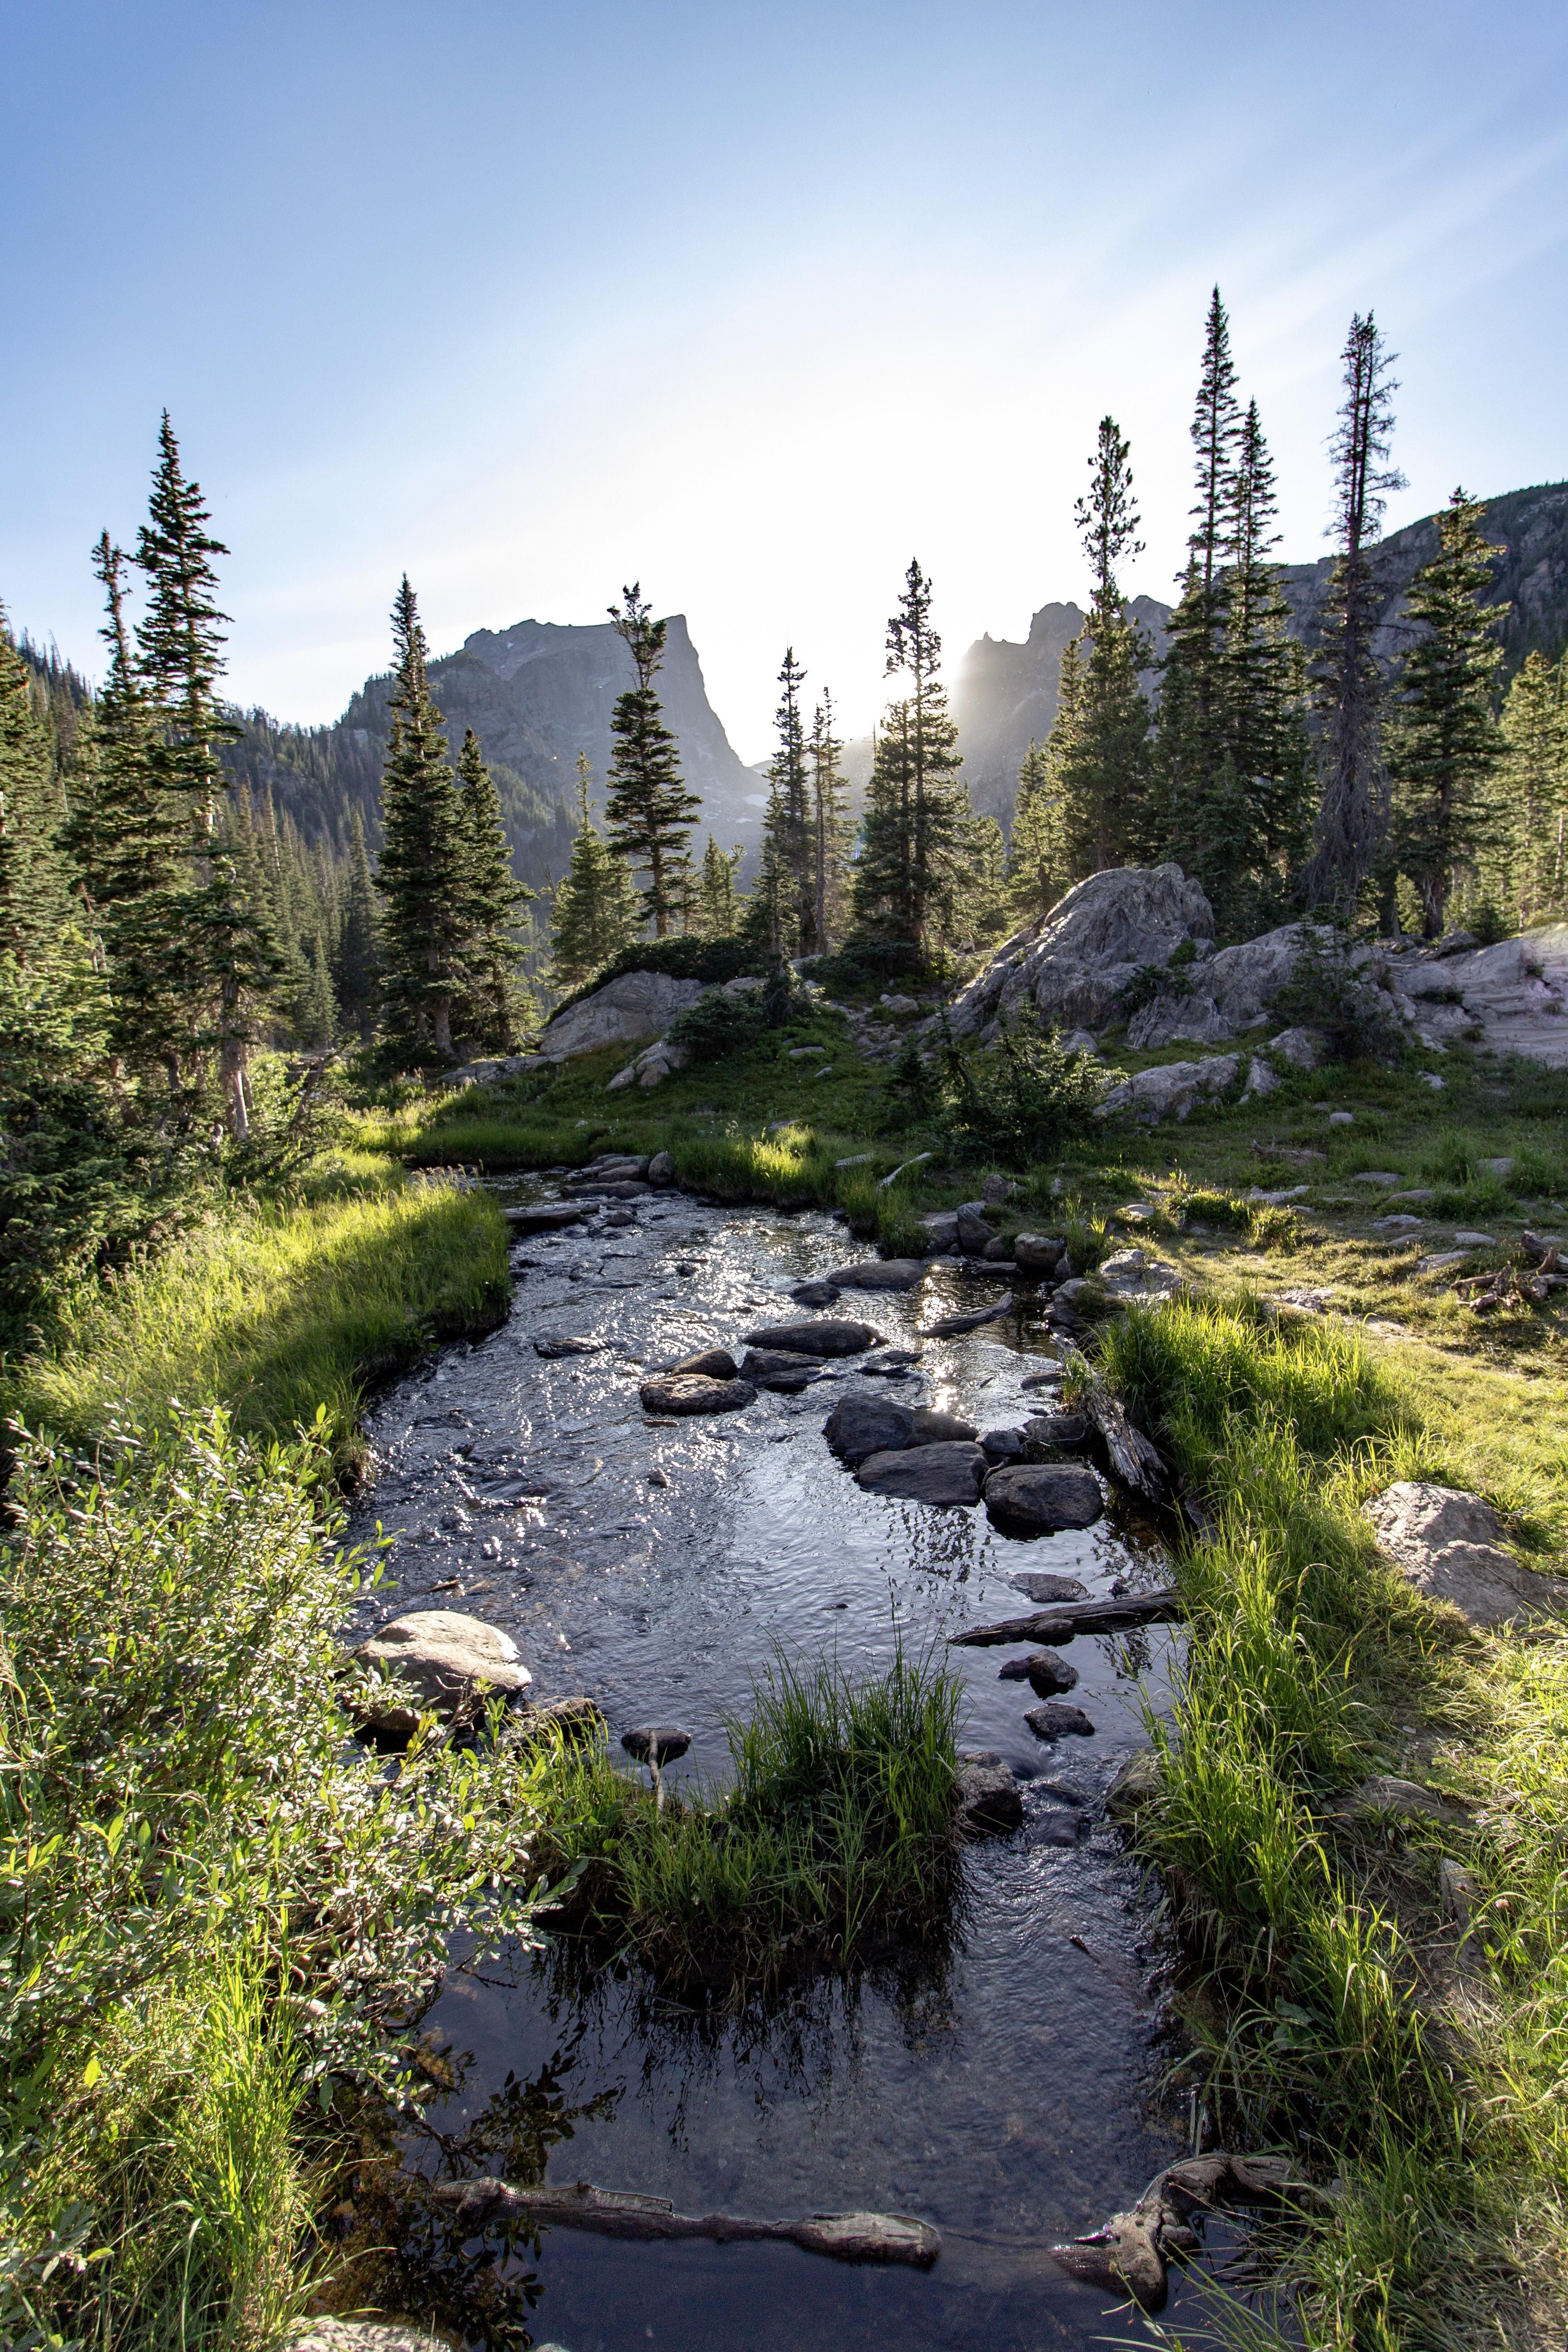 The Walk To Dream Lake Colorado Oc 3456x5184 Blaine10156 Https Ift Tt 2nch8rp August 28 2019 At 06 19 Dream Lake Colorado Landscape Landscape Photography